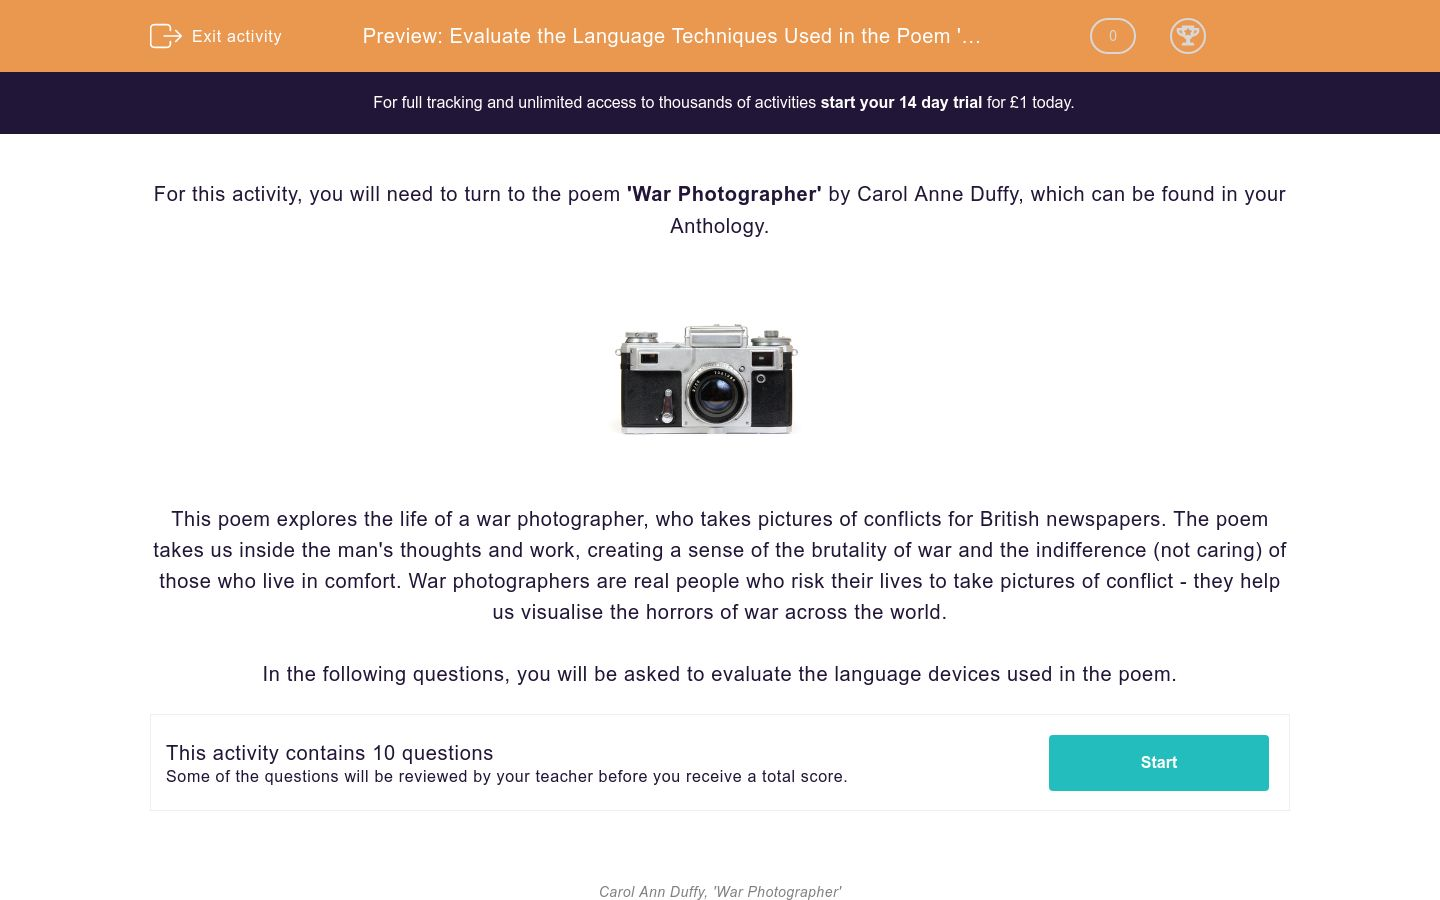 'Evaluate the Language Techniques Used in the Poem 'War Photographer' by Carol Ann Duffy' worksheet